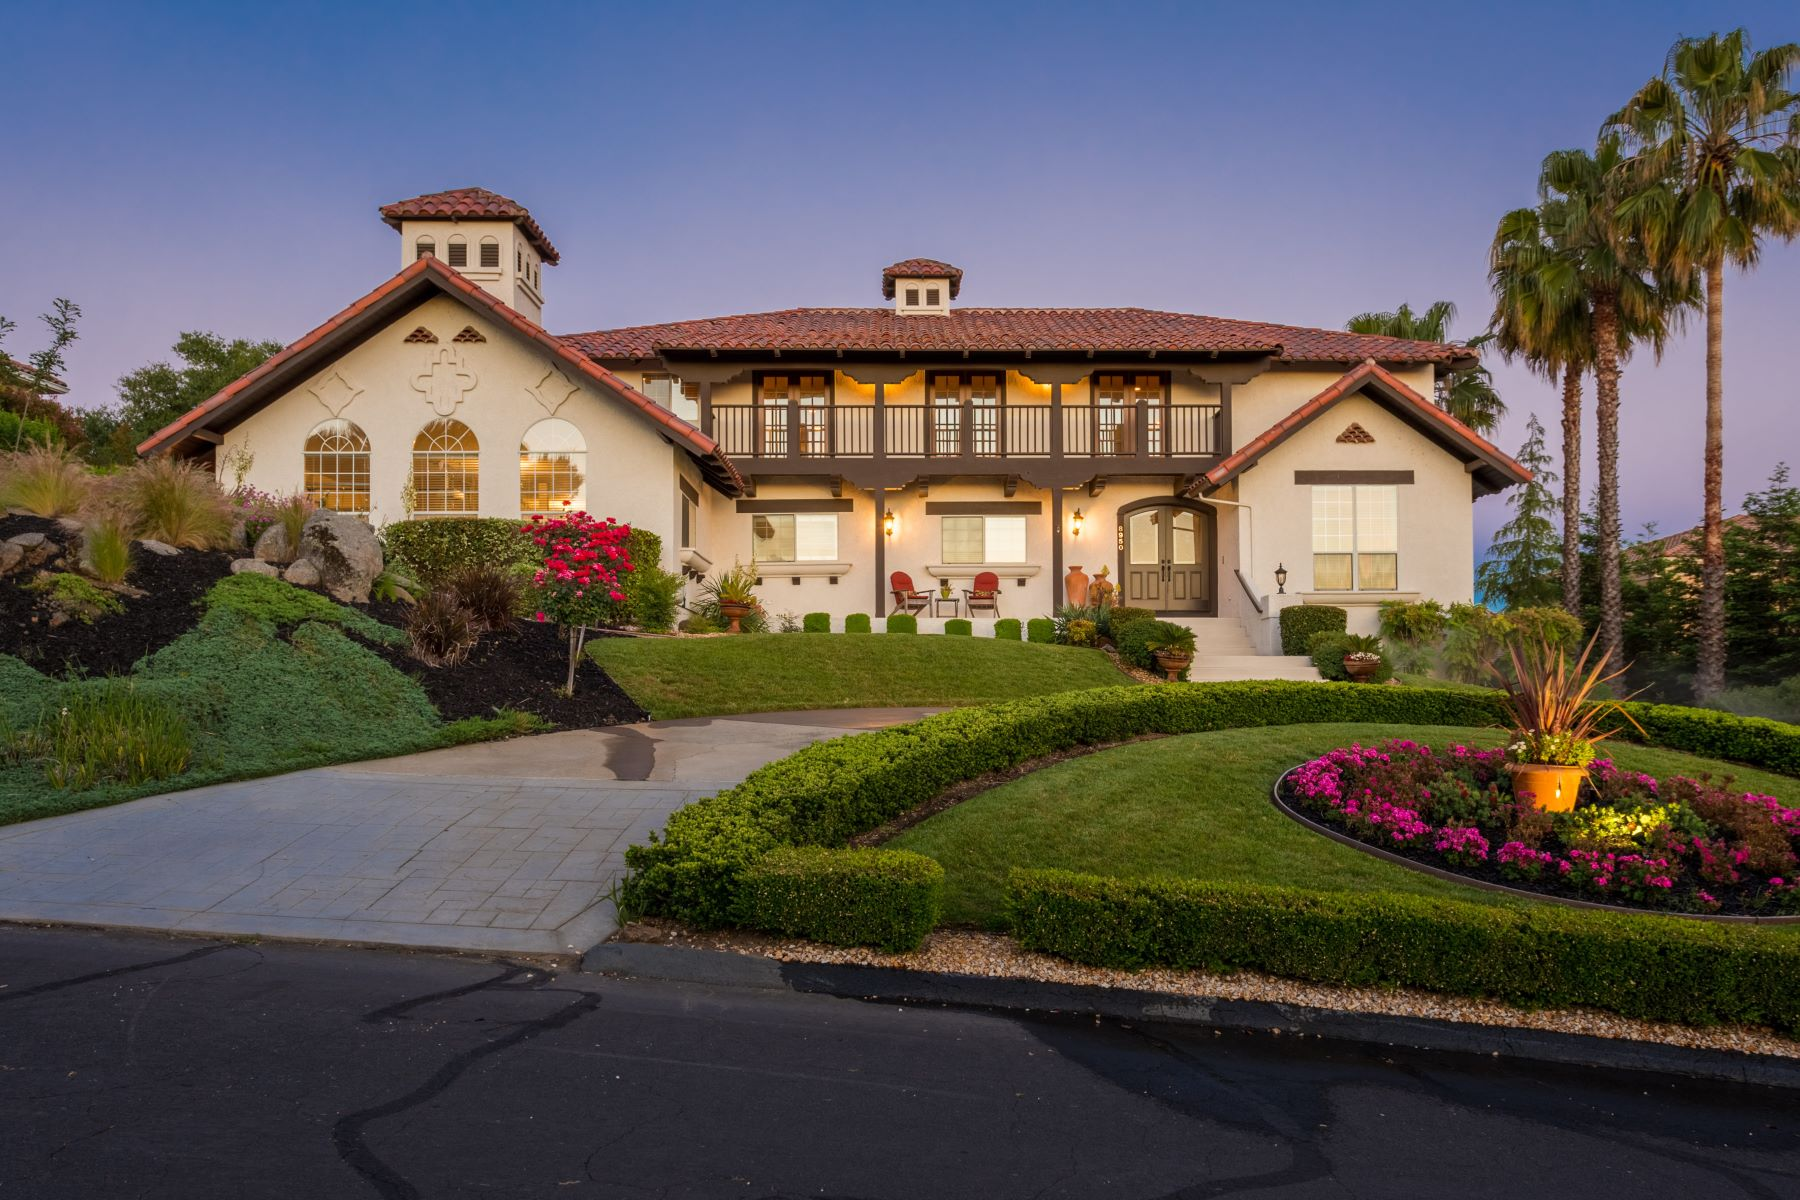 Casa Unifamiliar por un Venta en 8950 Vista De Lago Ct, Granite Bay, CA 95746 Granite Bay, California 95746 Estados Unidos